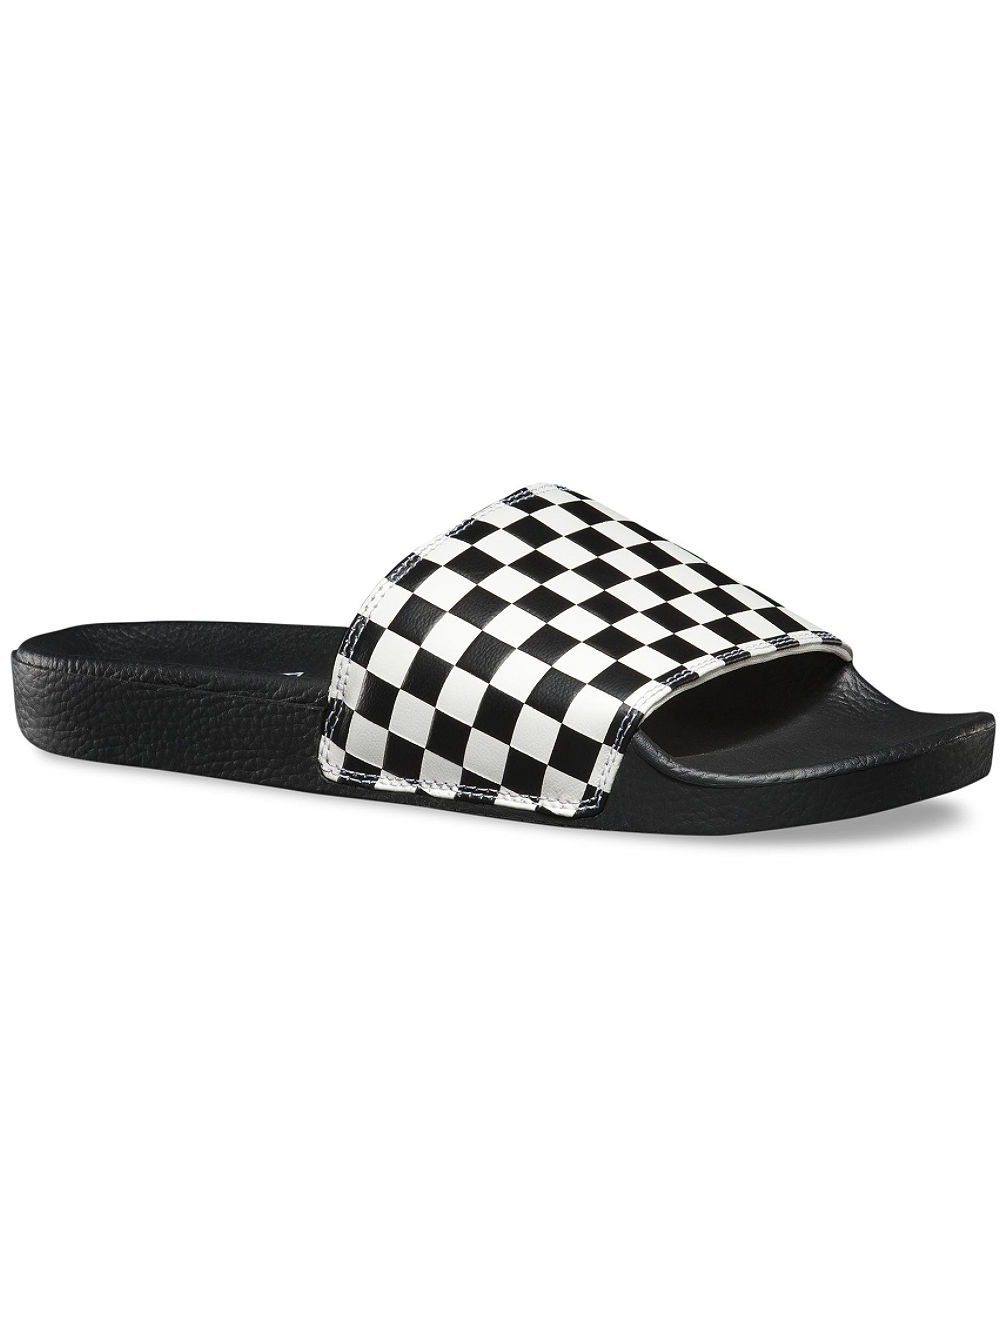 e0bff92817a428 Buy Vans Checkerboard Slide-On Sandals online at Blue Tomato